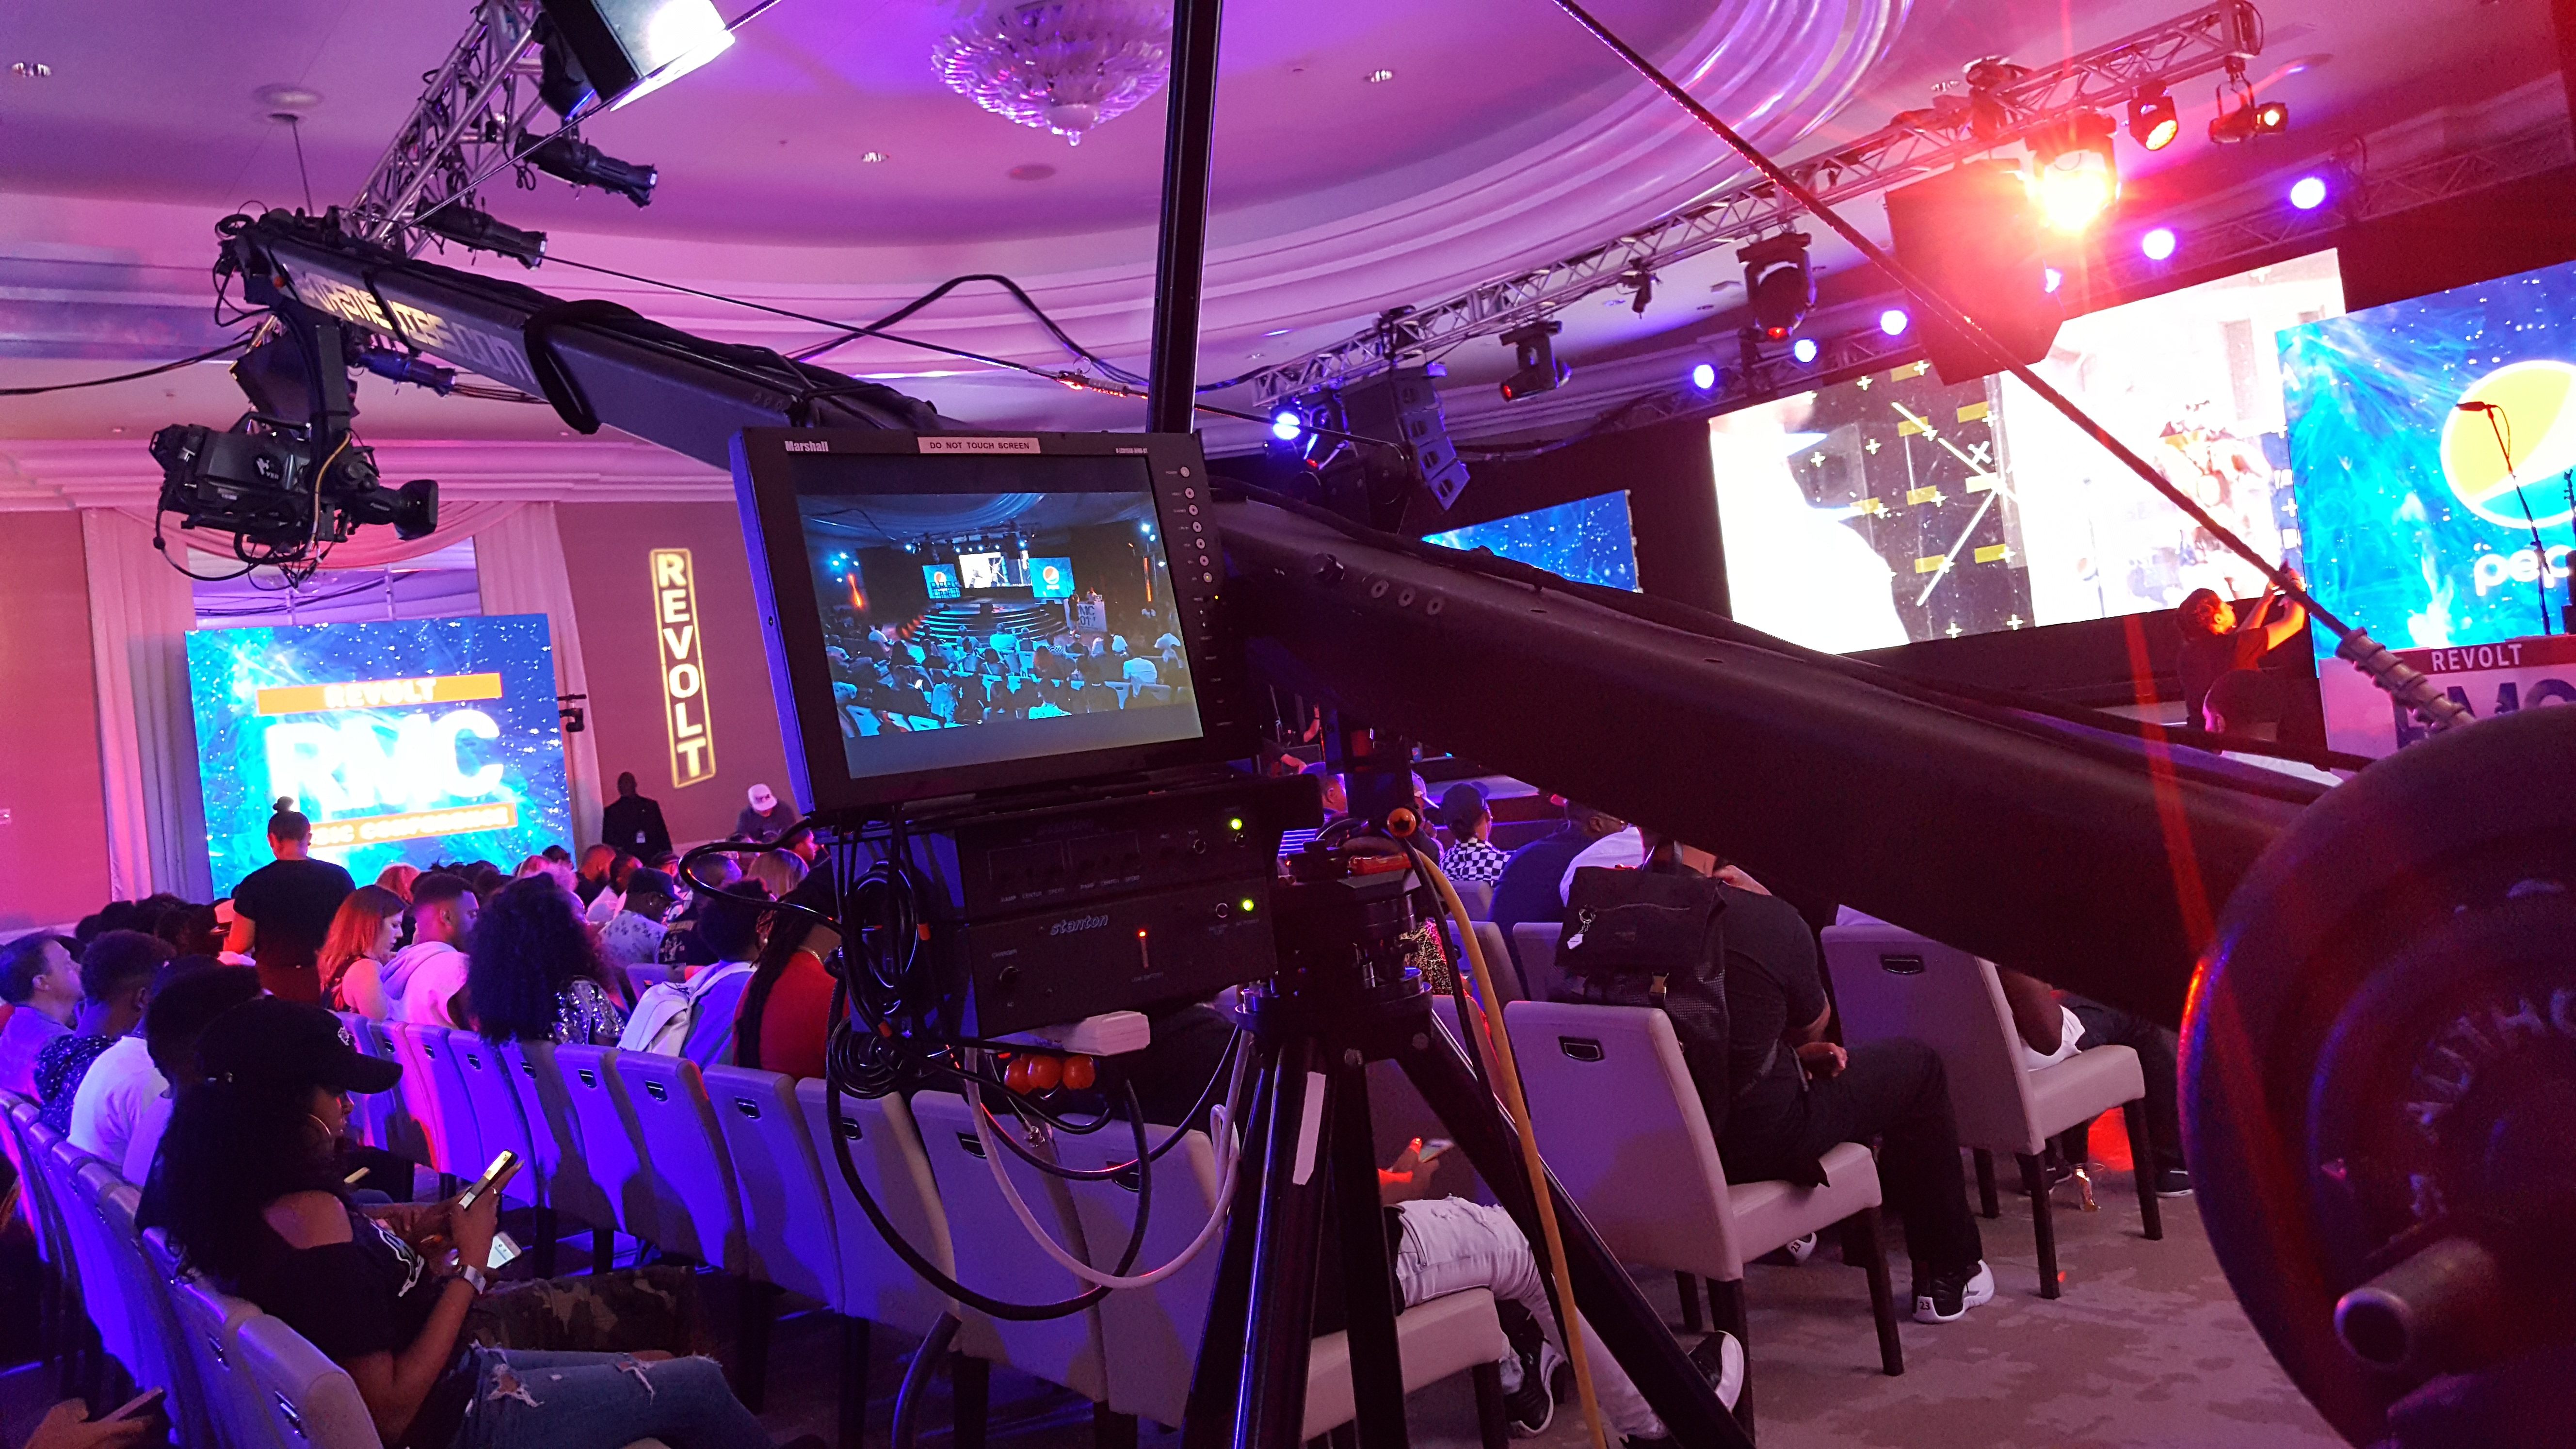 Event Videography Rates: What to Expect when Budgeting for Event Videography